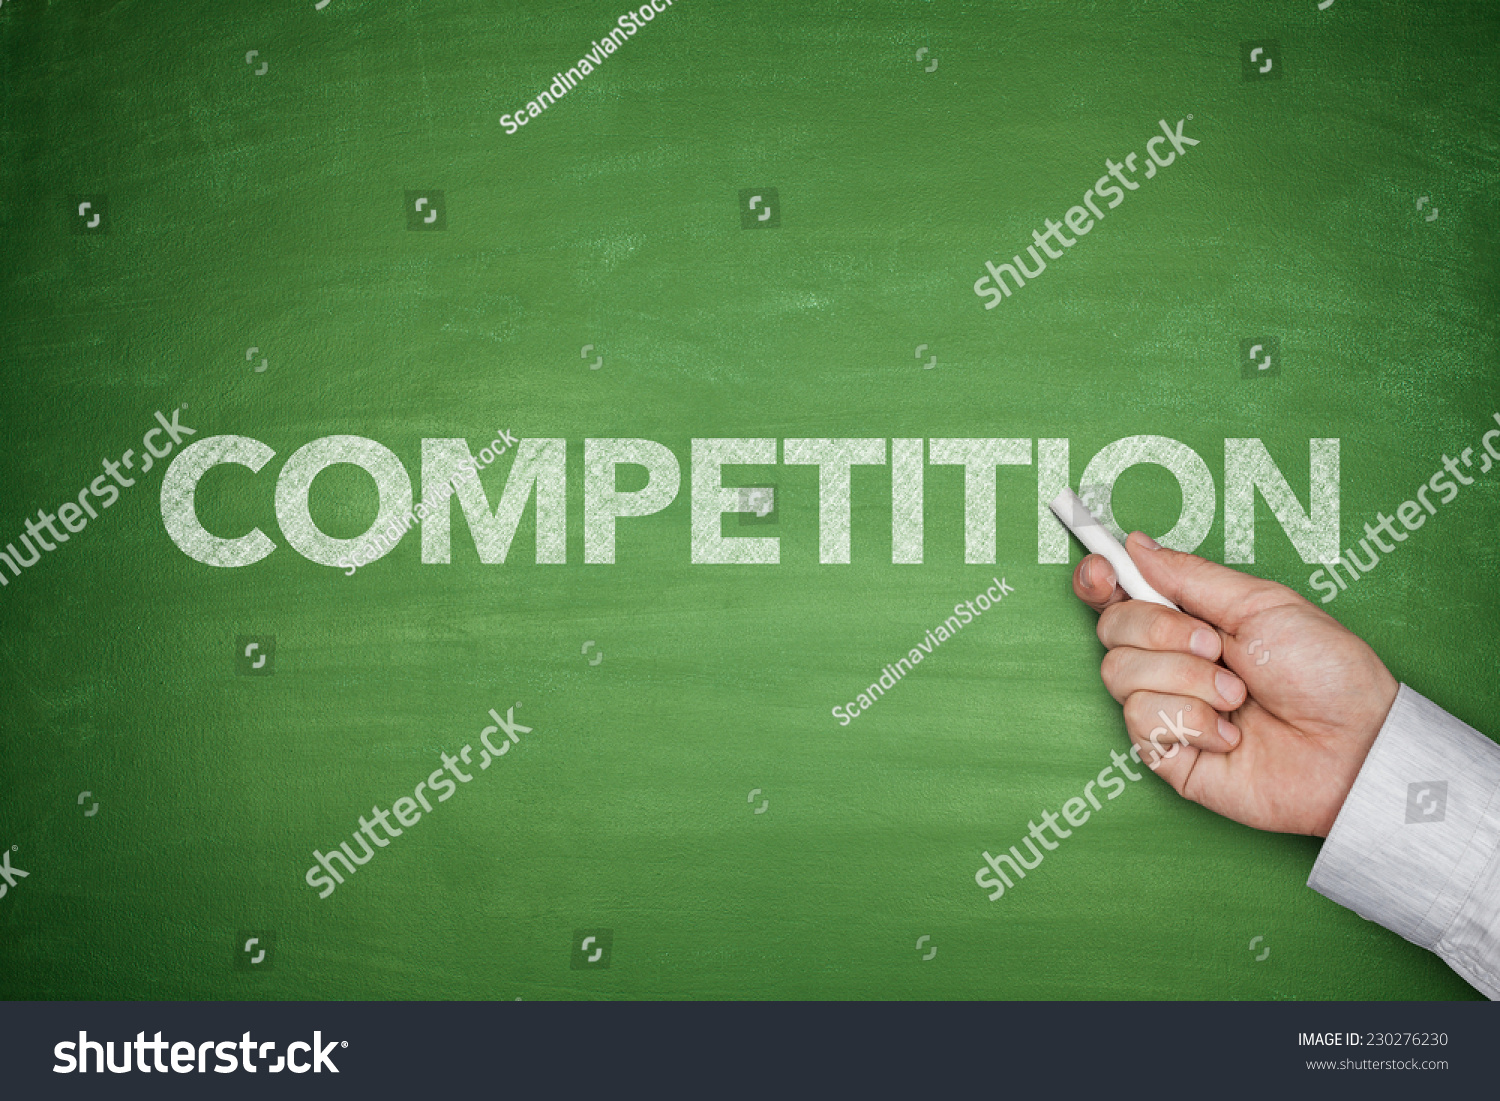 competitive word